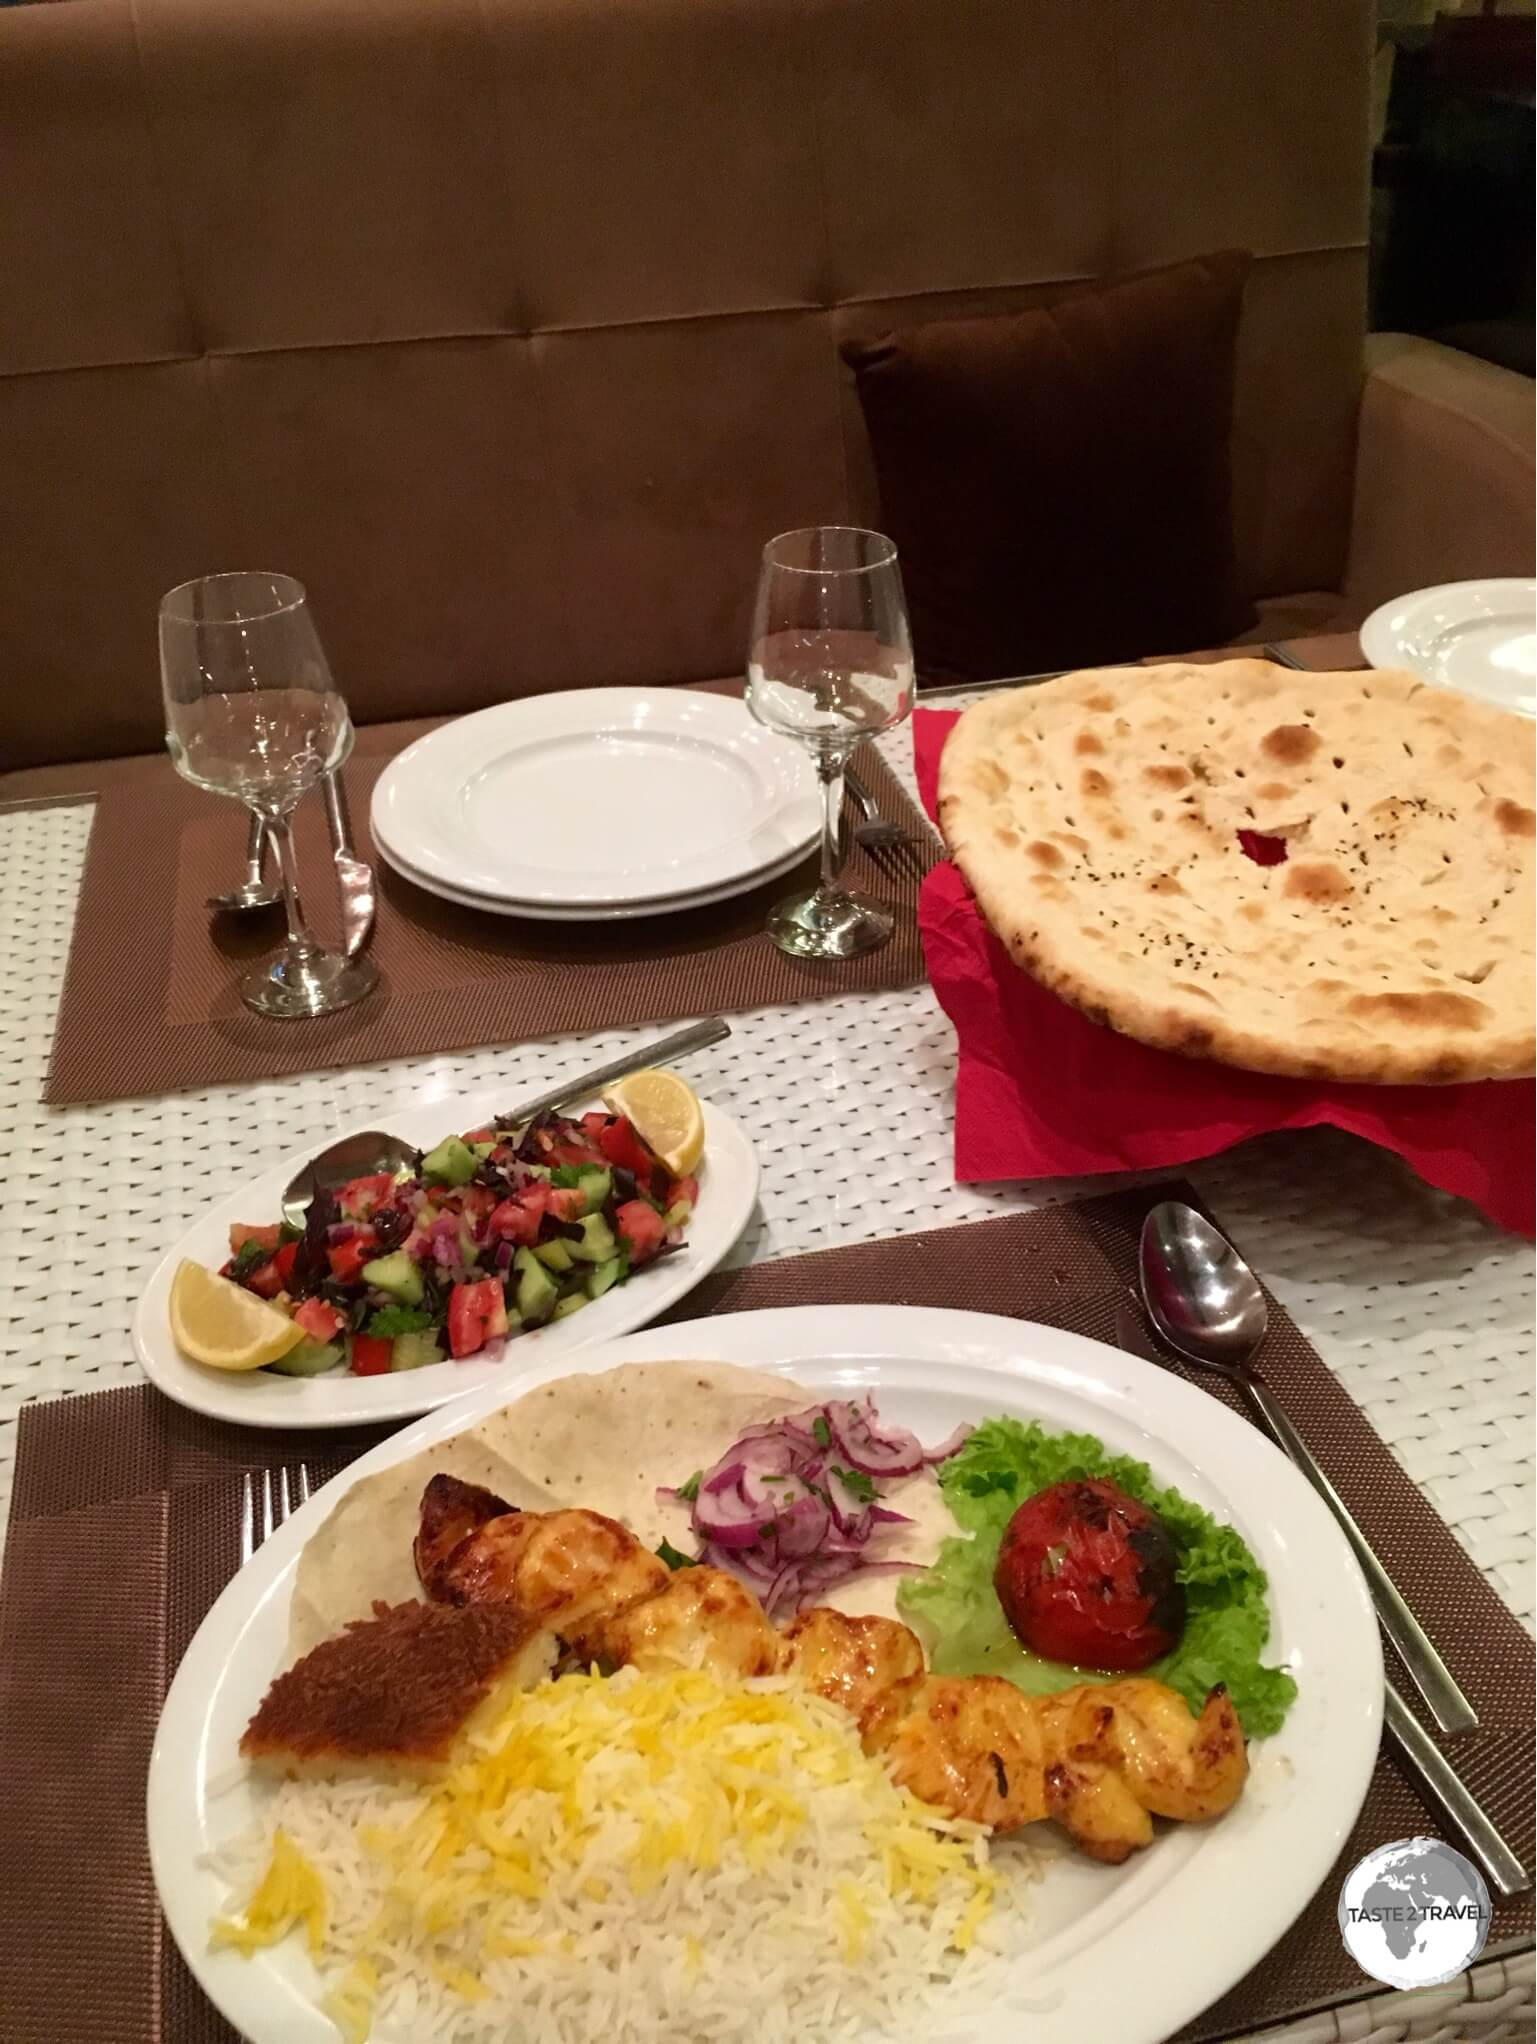 A typical meal in Azerbaijan – BBQ'd meat, salad, bread and some rice.